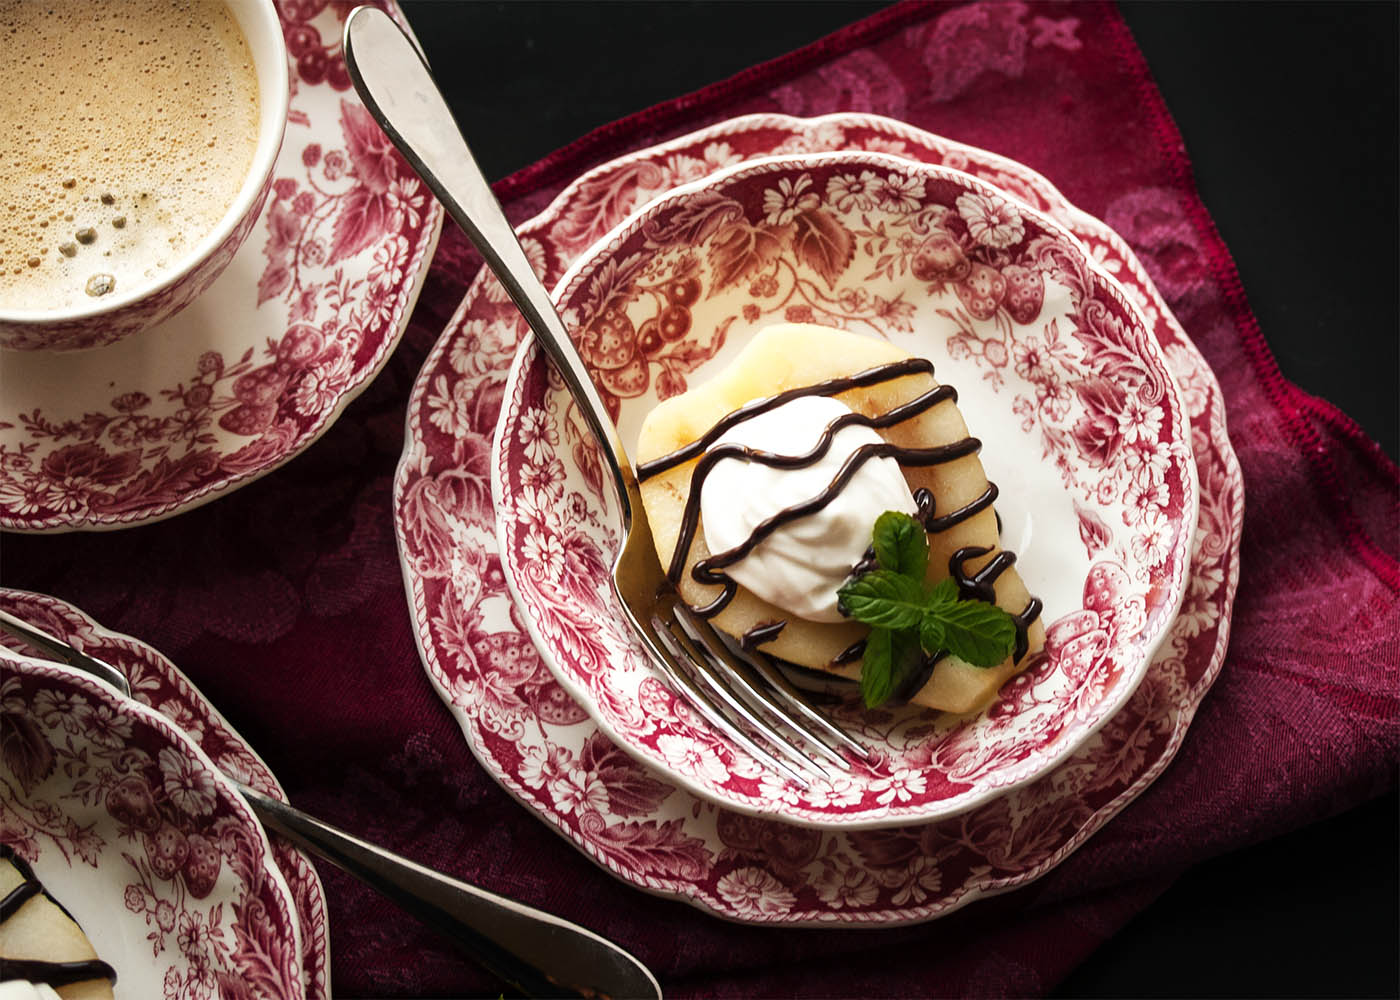 Poached Pears with Mascarpone Cream - These pears are poached in a spiced white wine syrup and then filled with mascarpone whipped cream and finished with a drizzle of bittersweet chocolate sauce. A wonderful way to end a holiday meal!   justalittlebitofbacon.com